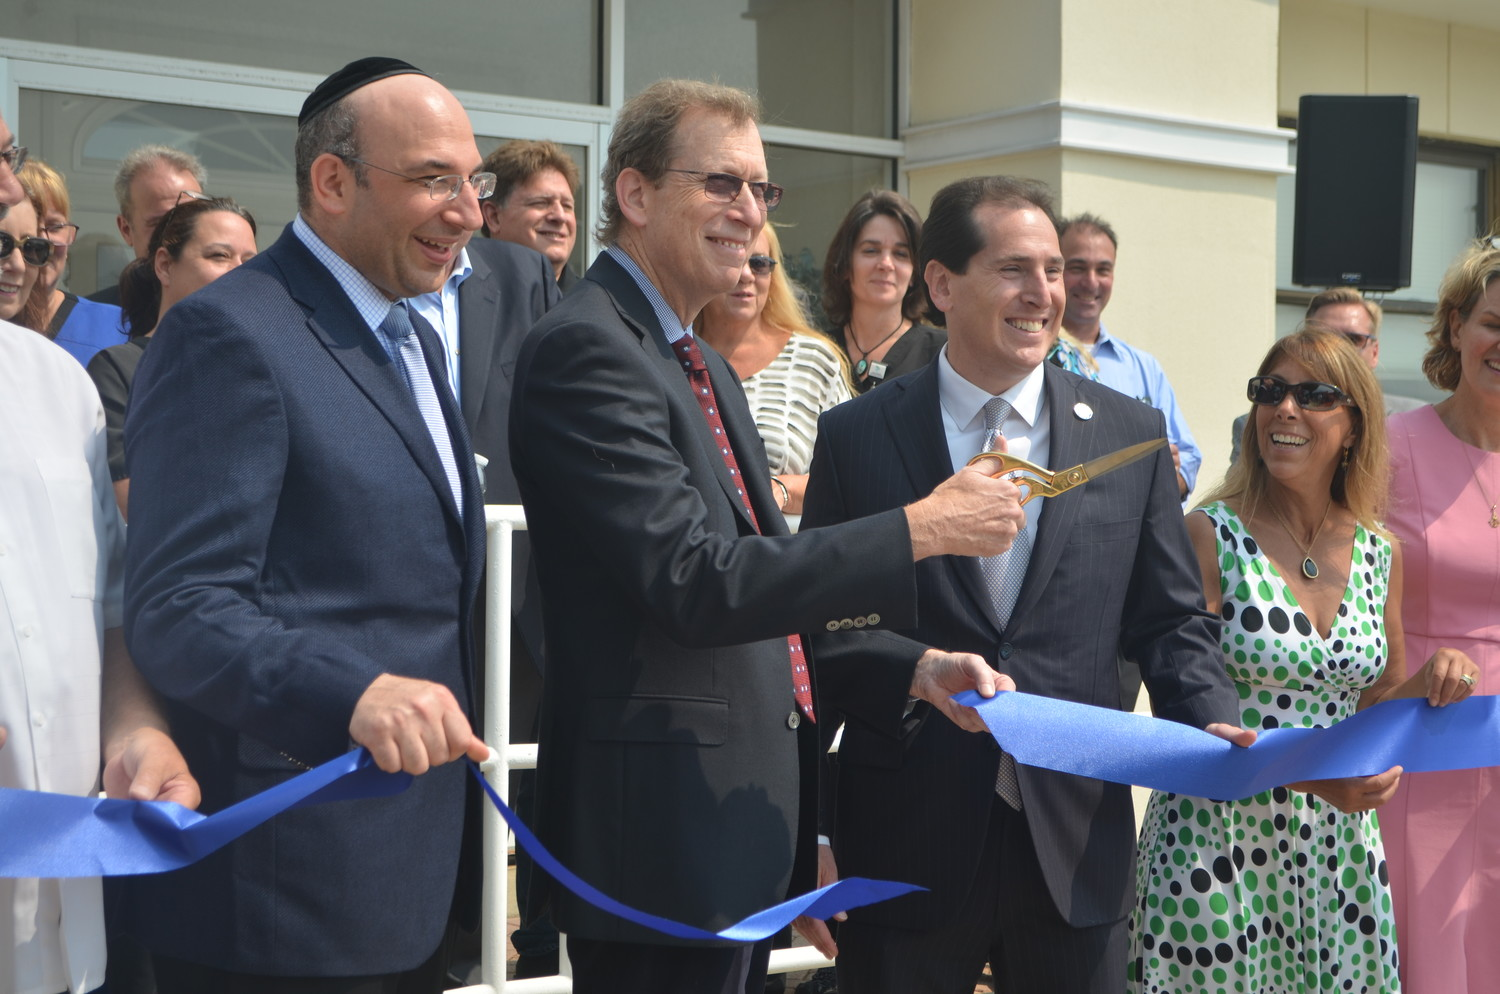 Dr. Jason Levi Esses, left, Dr. Lee Weitzman, State Sen. Todd Kaminsky and Assemblywoman Melissa Miller attended a ribbon cutting on Aug. 16 to announce the partnership between Weitzman, a Long Beach physician, and South Nassau Communities Hospital.